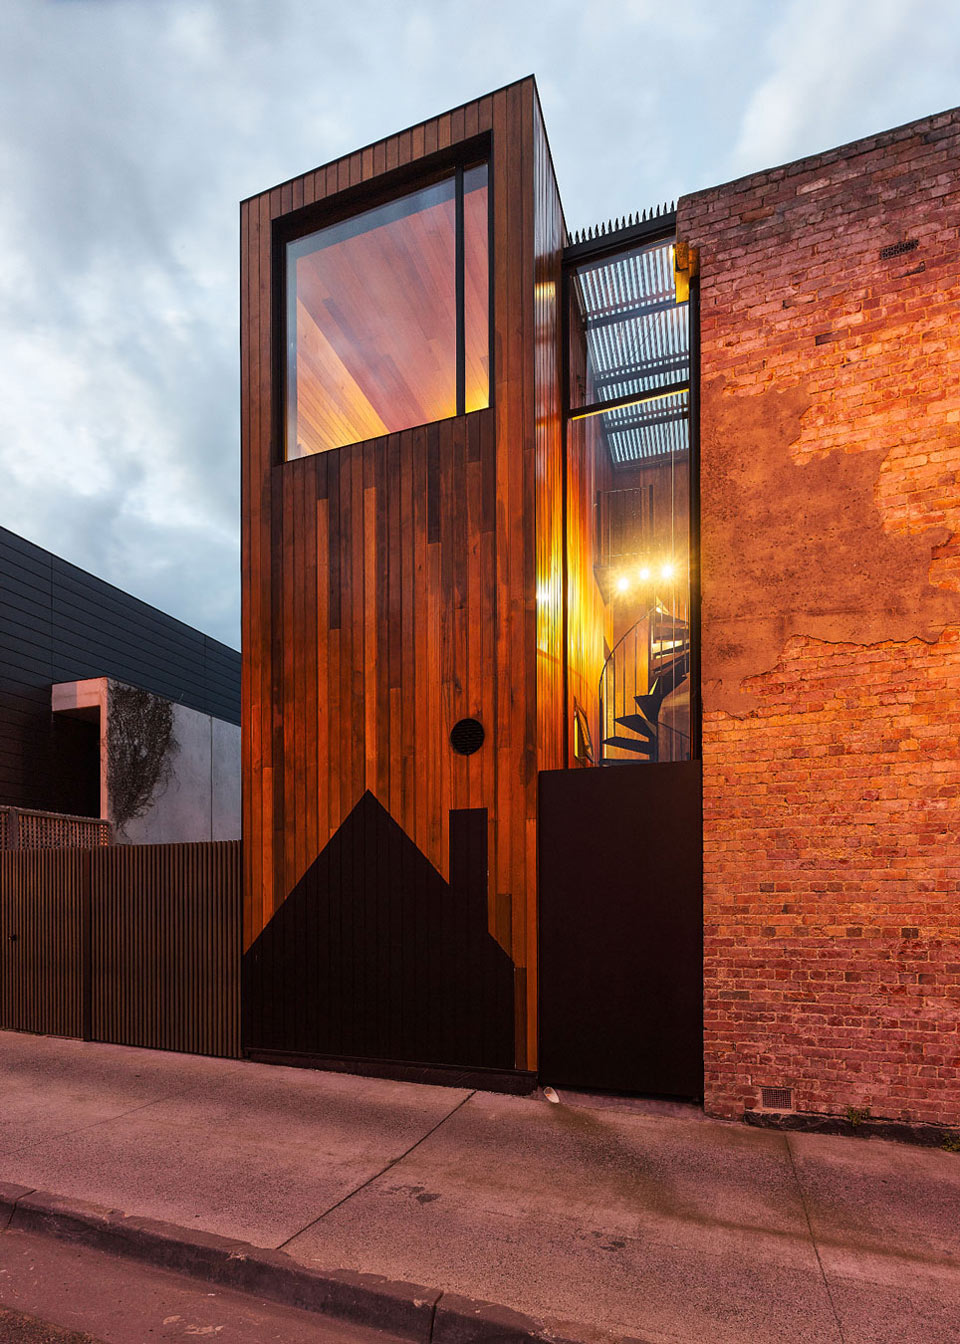 Wood, Glass & Brick Design, Two-Home Extension Within a Single Building in Richmond, Australia